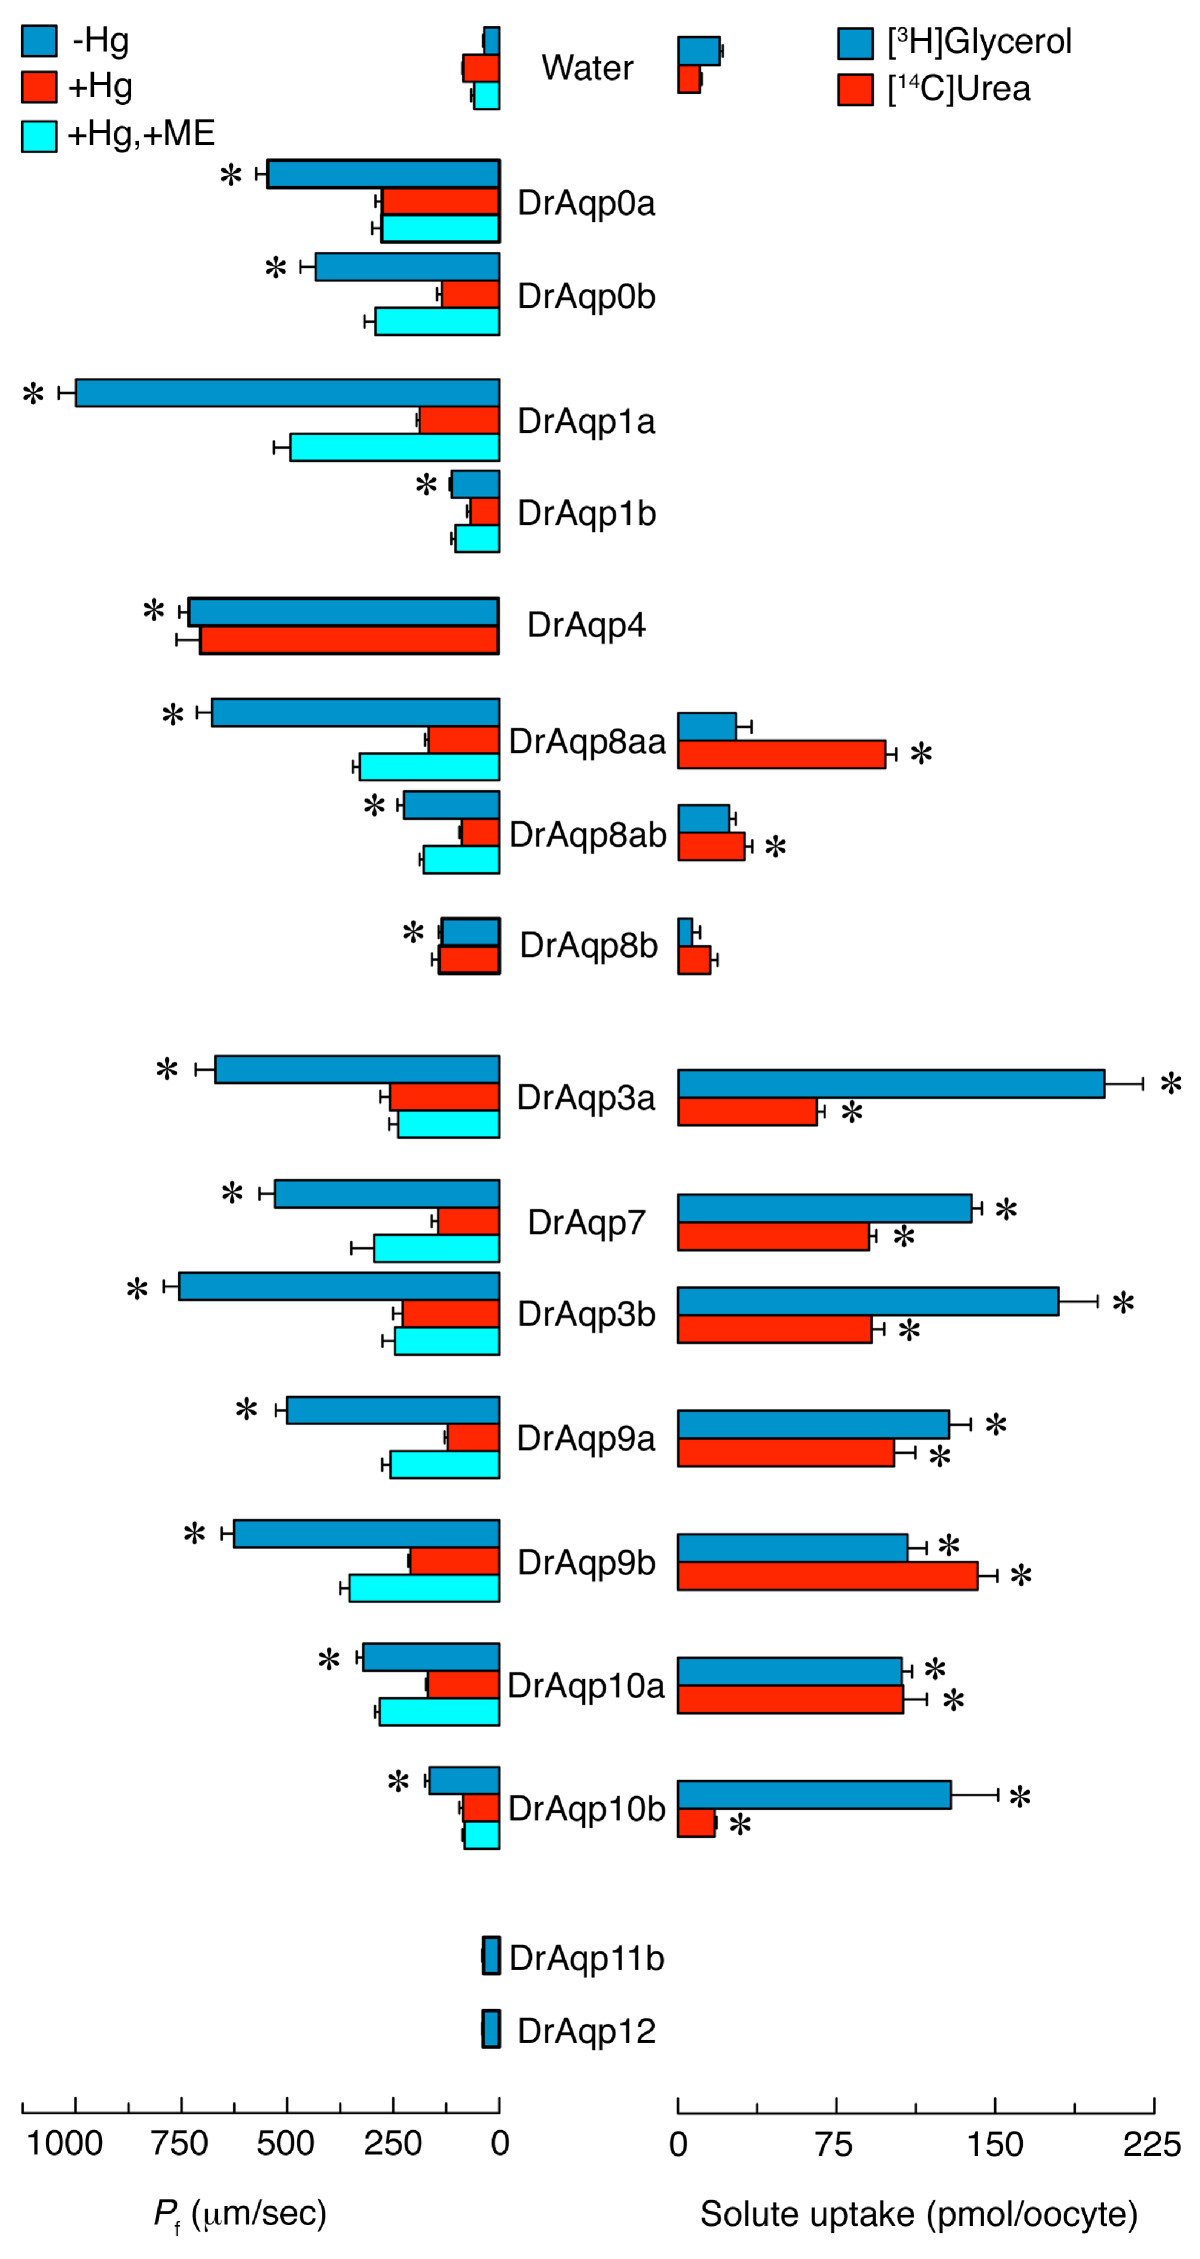 http://static-content.springer.com/image/art%3A10.1186%2F1471-2148-10-38/MediaObjects/12862_2009_Article_1254_Fig7_HTML.jpg